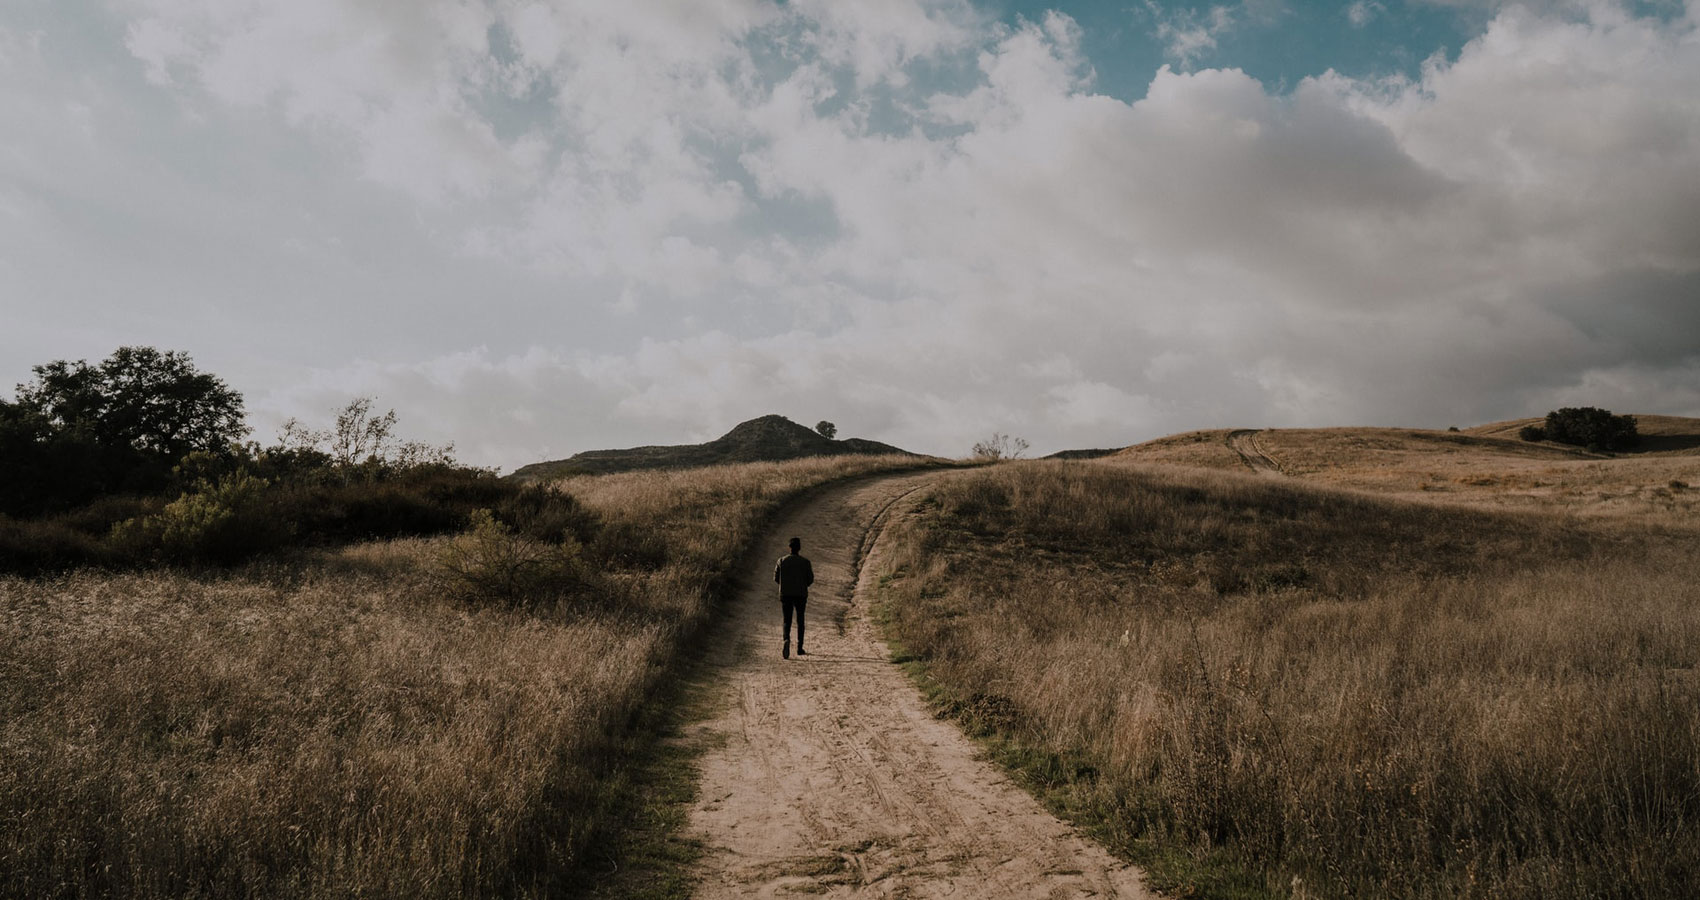 The Walk, micropoetry written by Siva Wrightat Spillwords.com